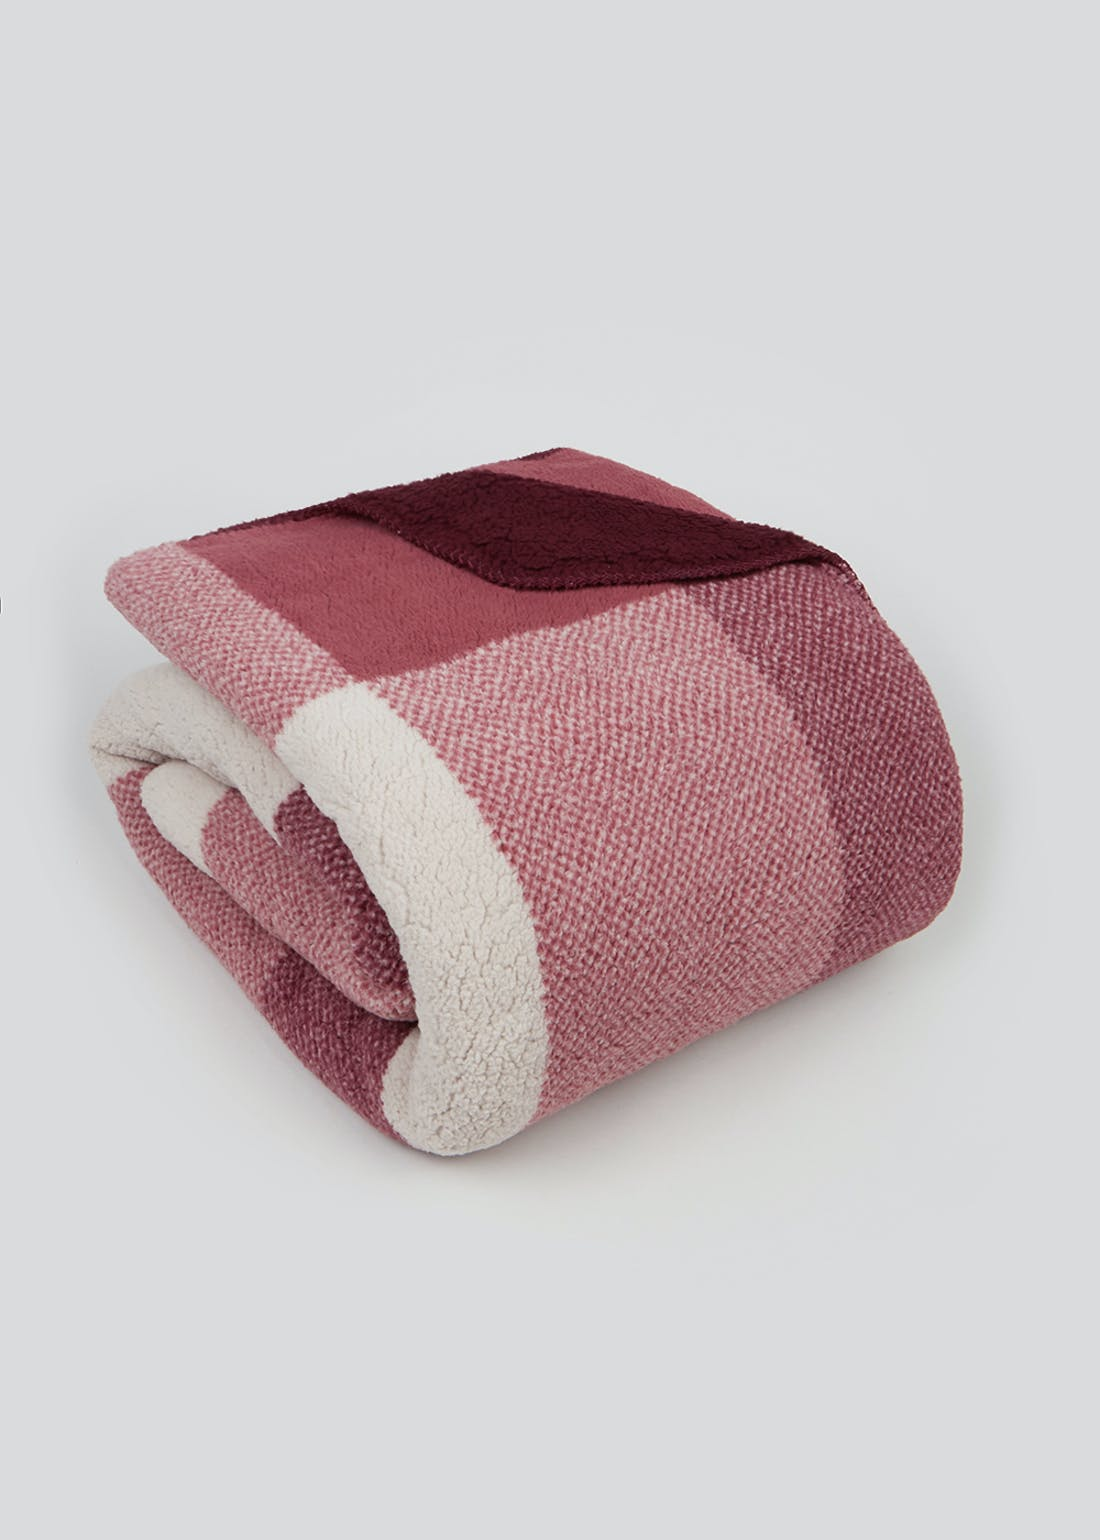 Check Sherpa Fleece Throw Blanket (180cm x 150cm)